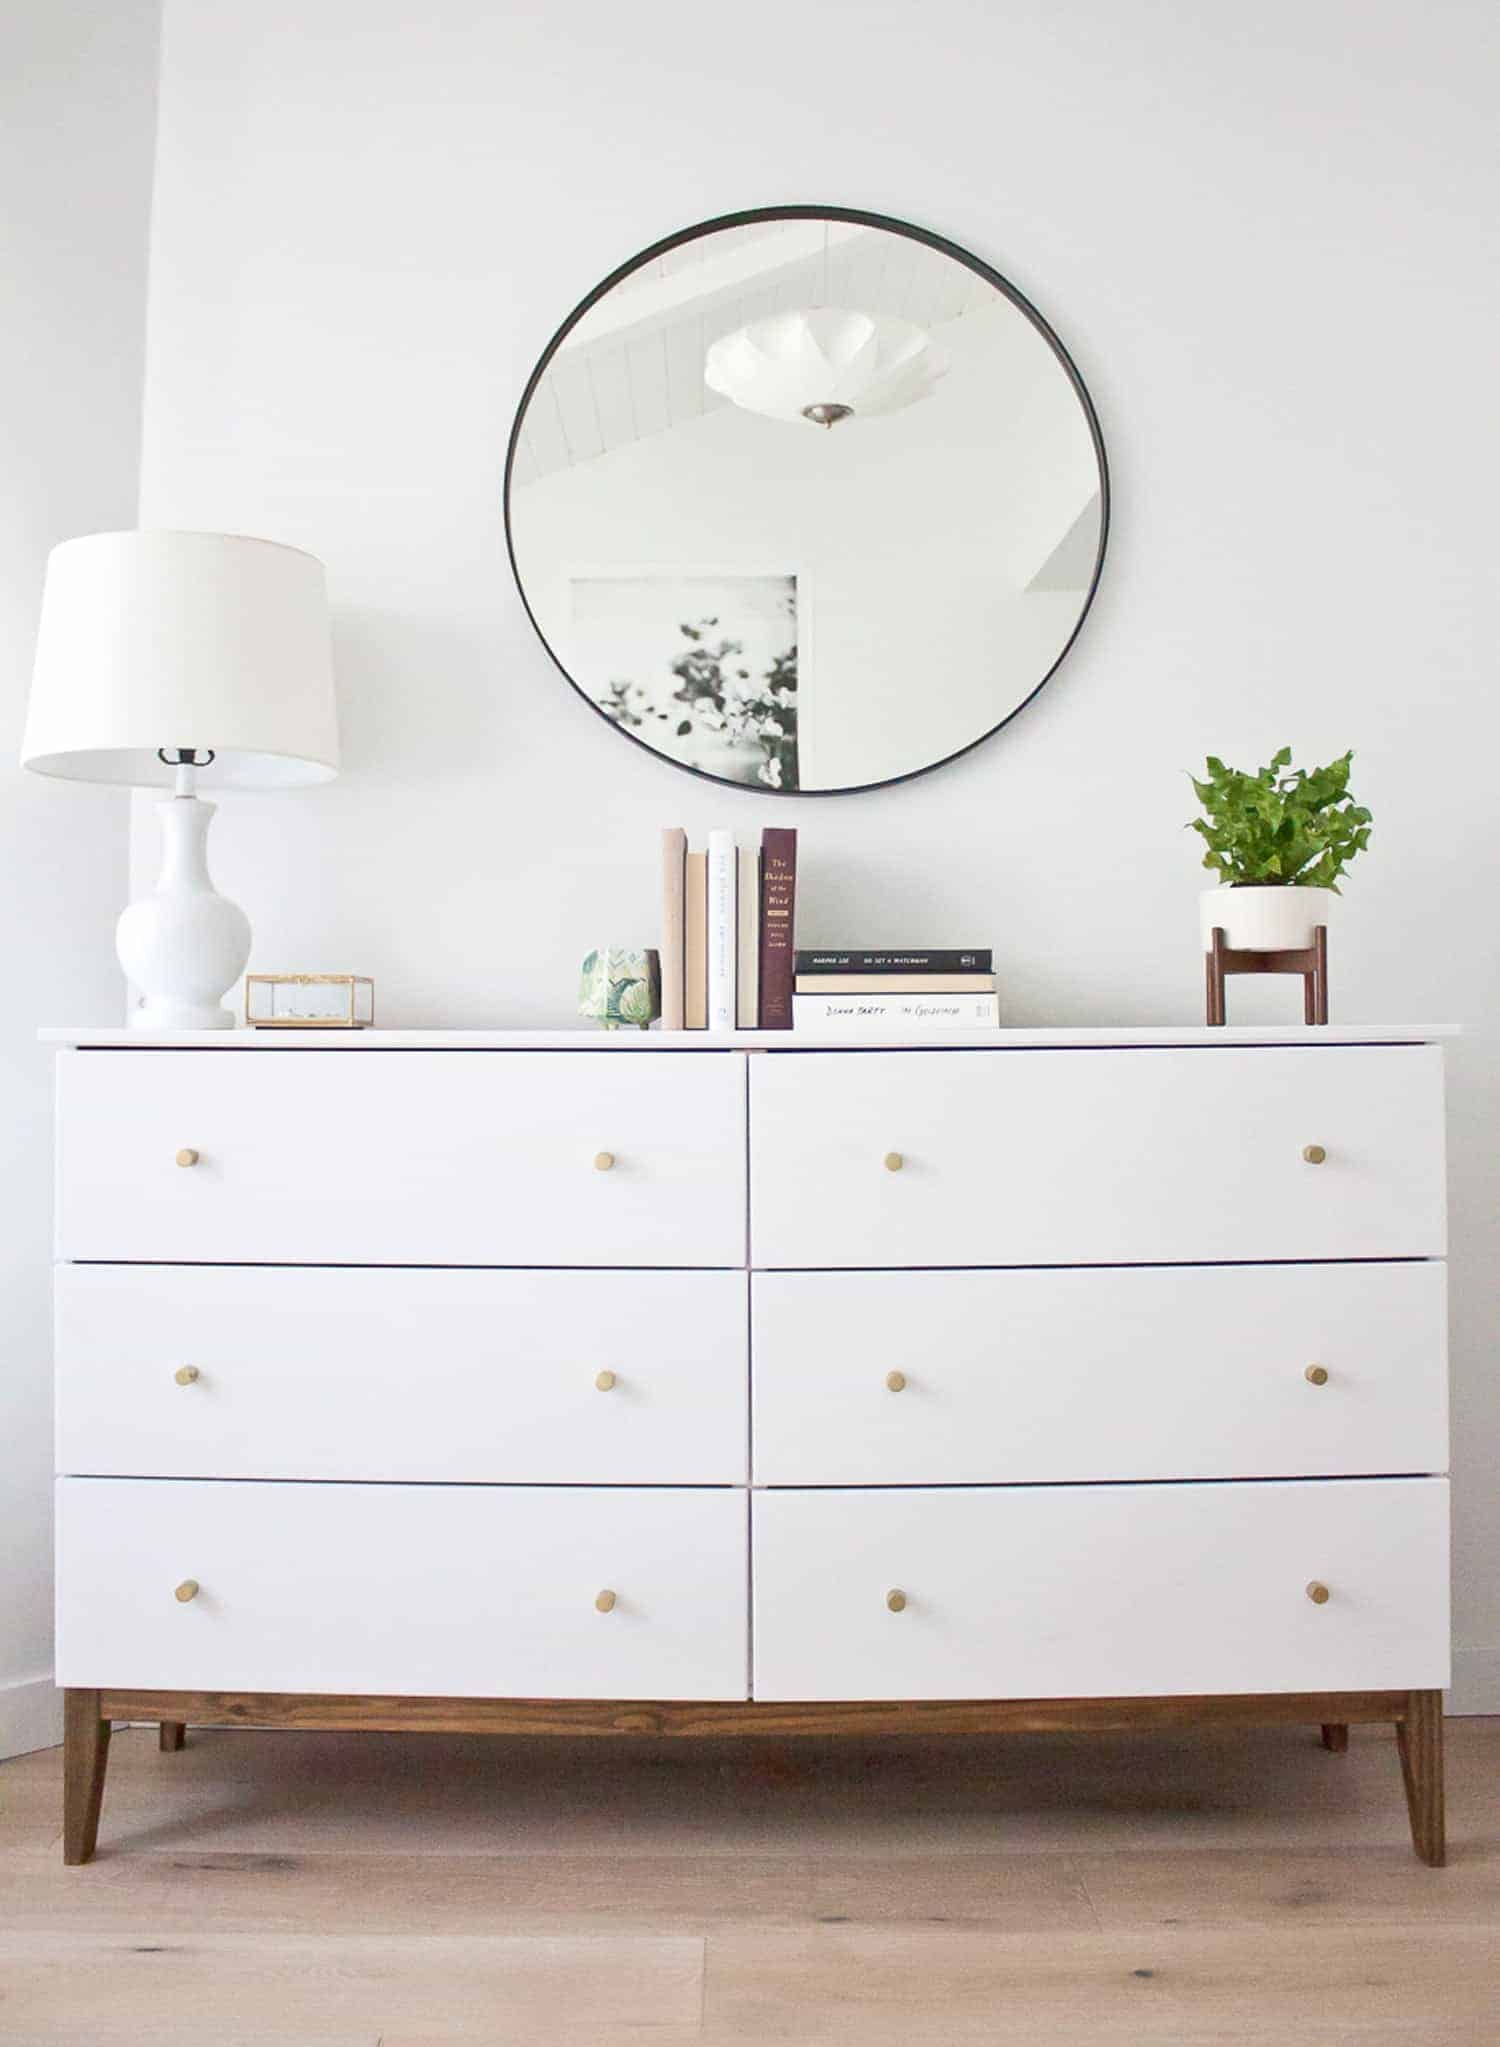 40 Ikea Mid Century Modern Style Hacks For Your Home Make Calm Lovely